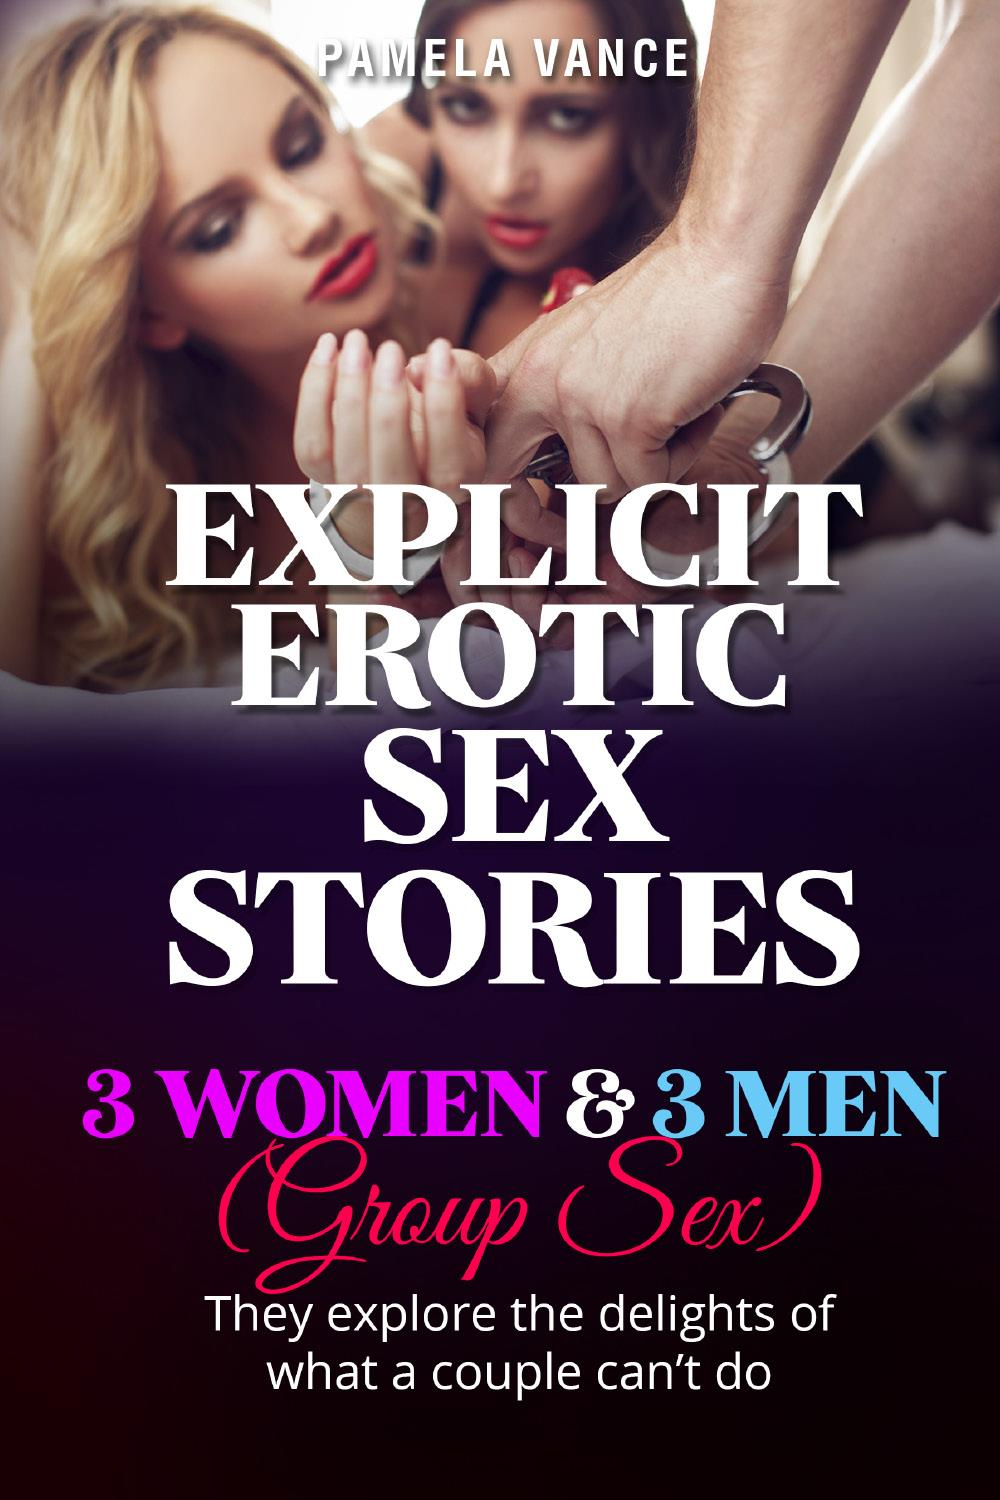 Explicit Erotic Sex Stories. 3 Wоmеn and 3 Mеn (Group sex) Thеу еxрlоrе thе dеlіghtѕ of what a соuрlе can't do